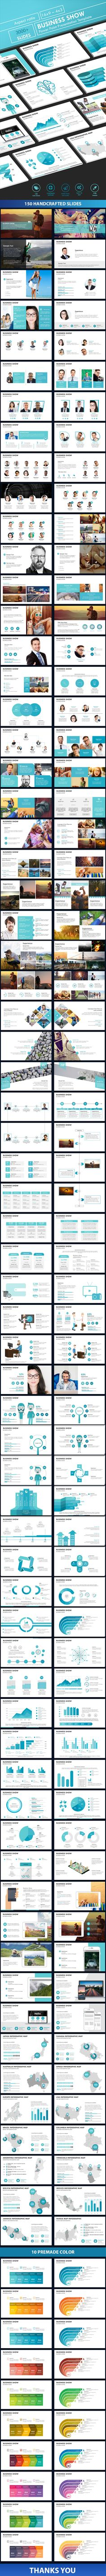 Business Show PowerPoint Presentation Template #corporate #ecomerce #marketing #analysis